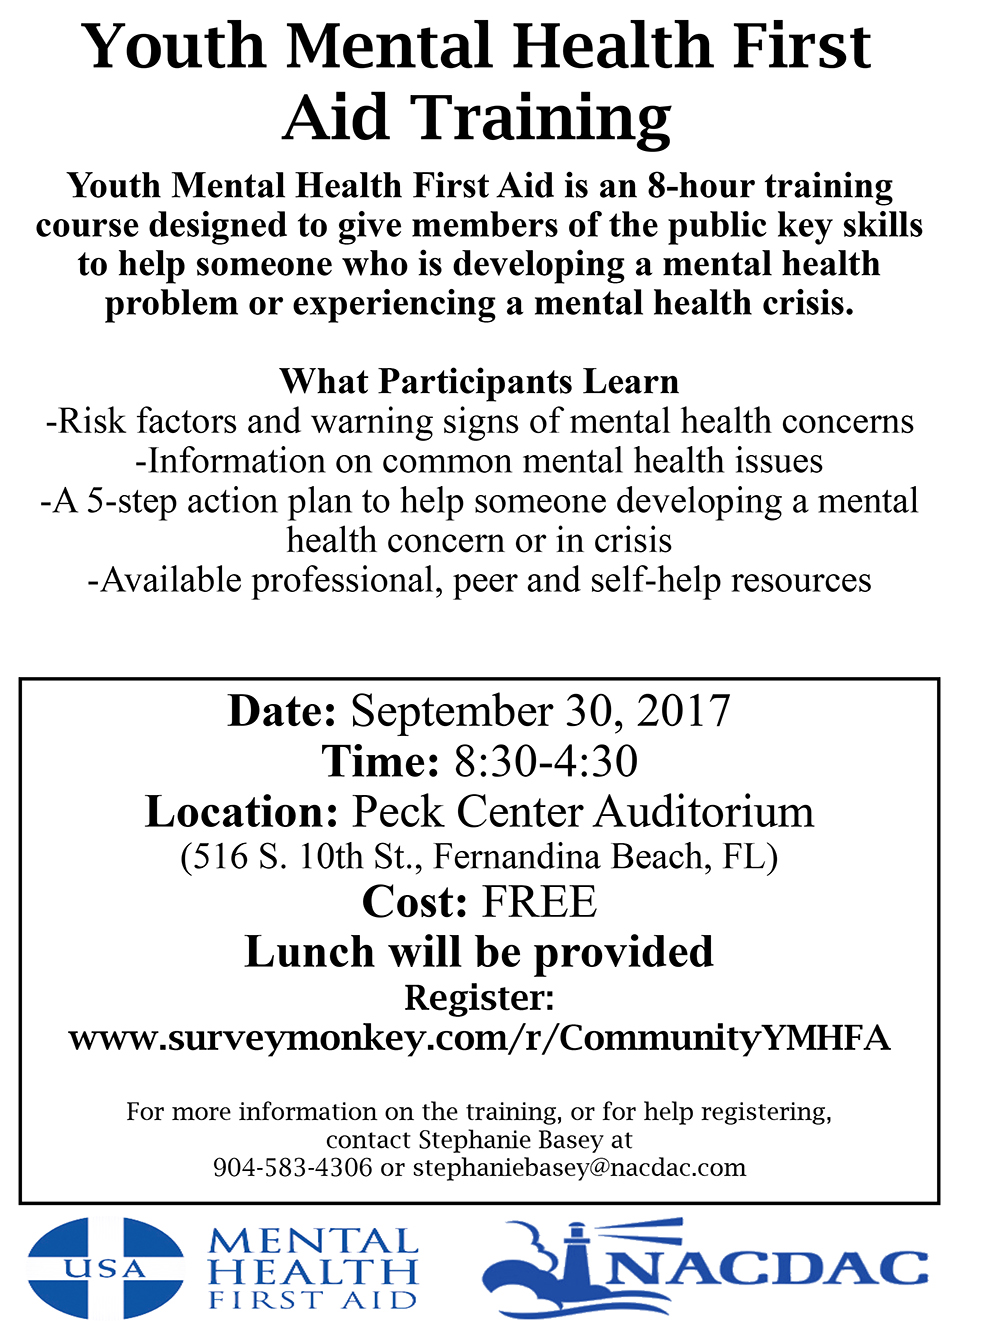 image of flyer for youth mental health first aid class